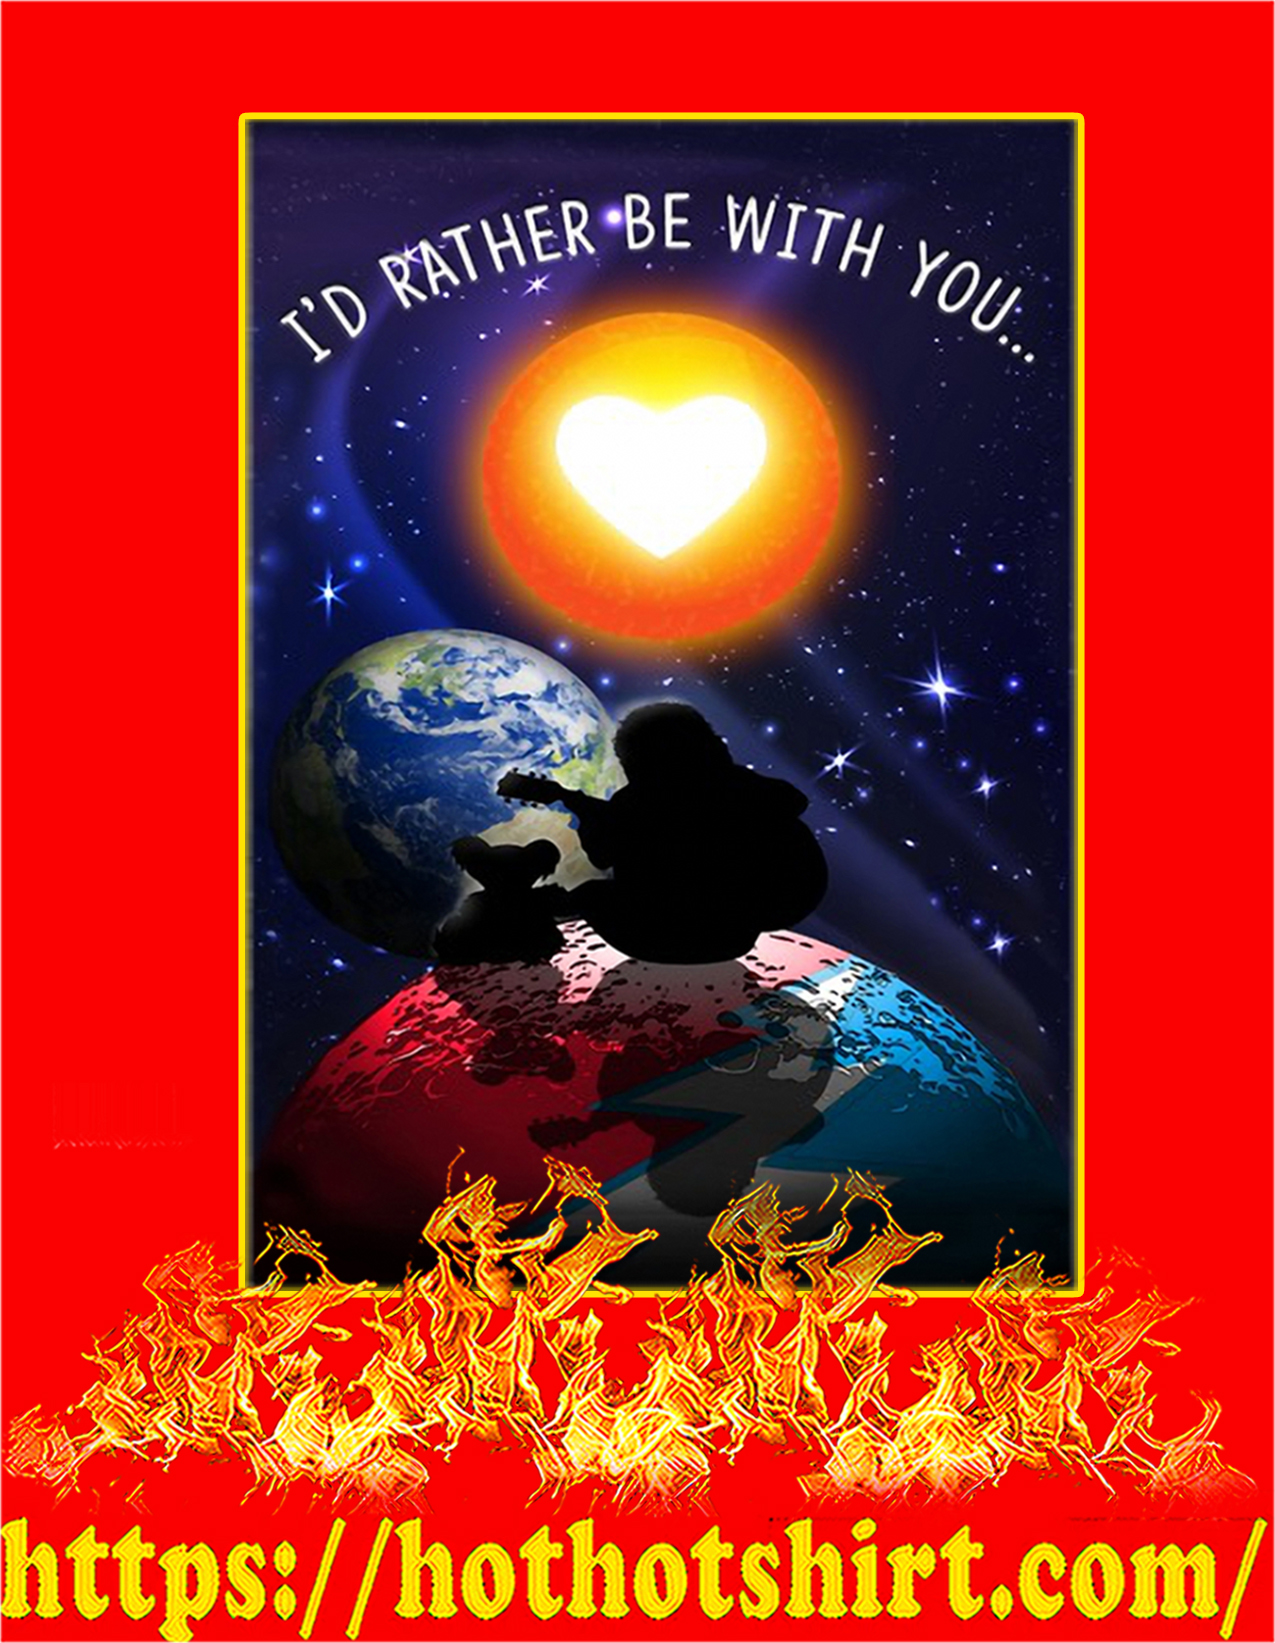 I'd rather be with you steven universe poster - A2